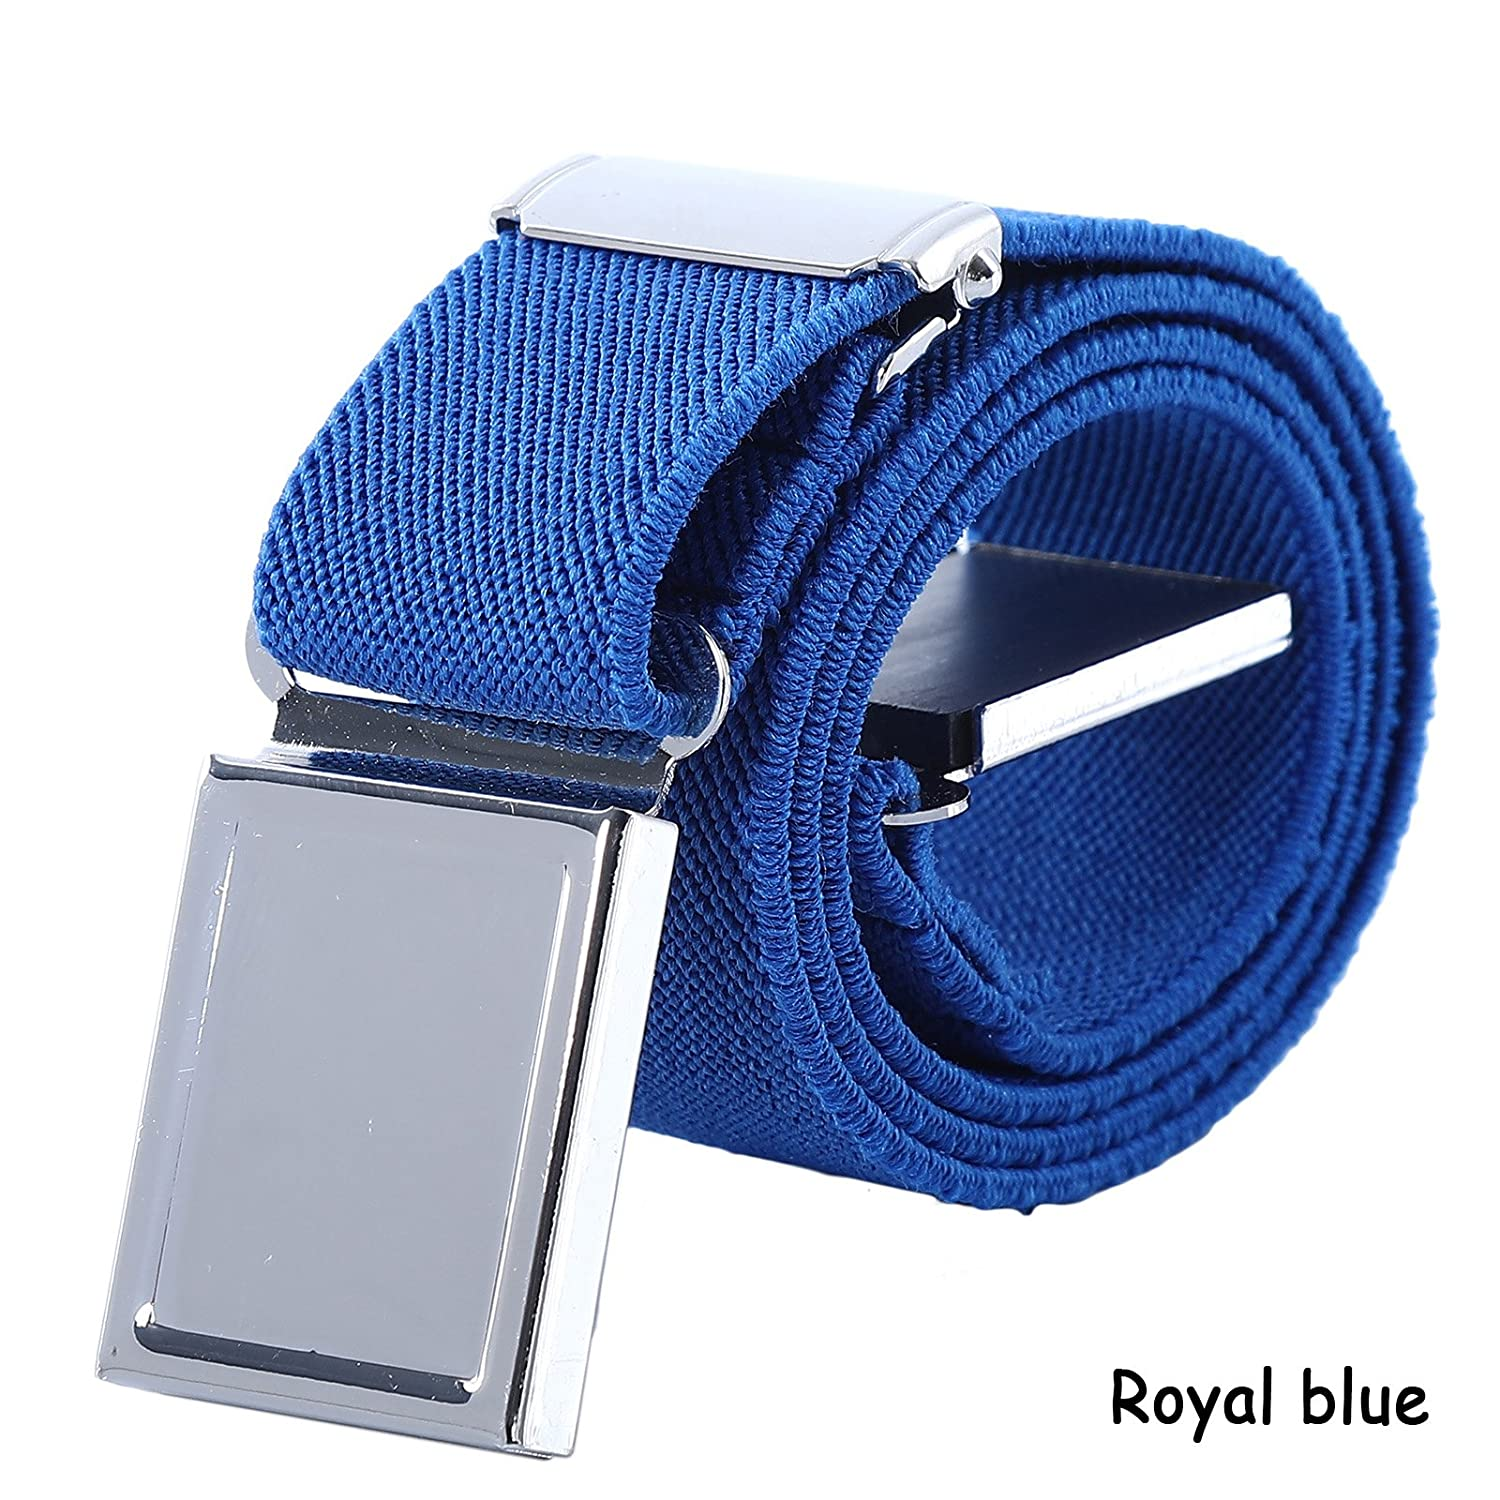 Boy Kids Magnetic Buckle Belt - Adjustable Elastic Child Belts for Girls, 3 Pieces (Royal blue) B01D9S5U1Ia16